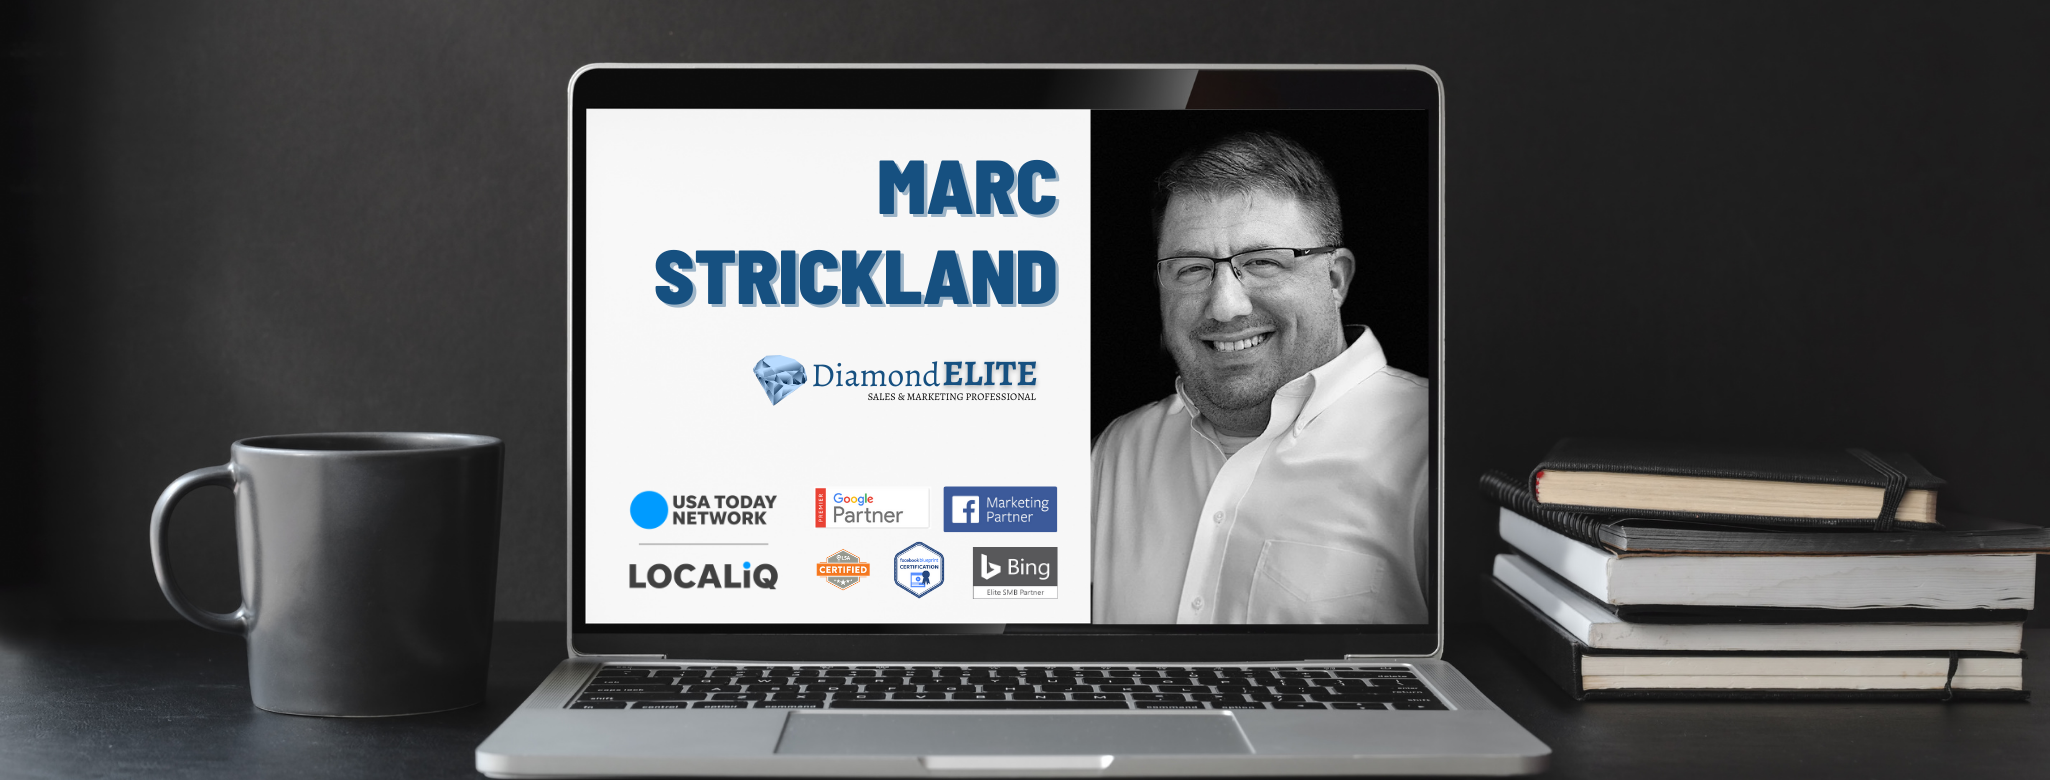 Marc Strickland - Marketing Consultant for LOCALiQ reviews | Marketing at 119 S Main St - Memphis TN